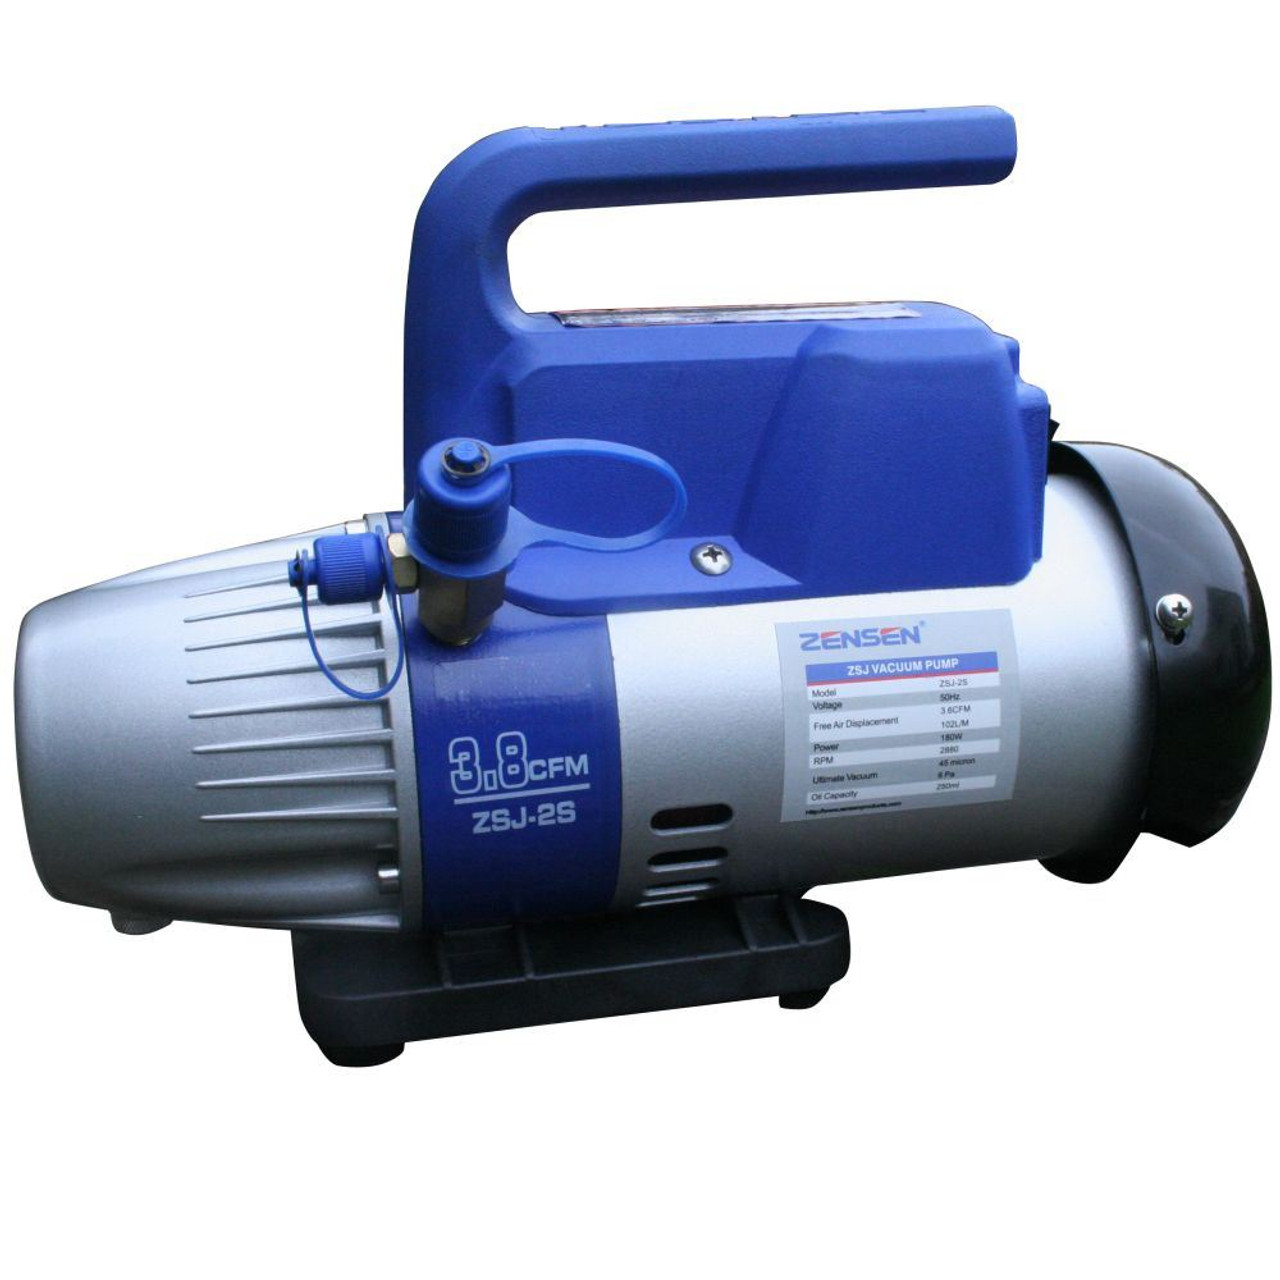 3.8cfm Single Stage Vacuum Pump, 6pa, 45 Microns